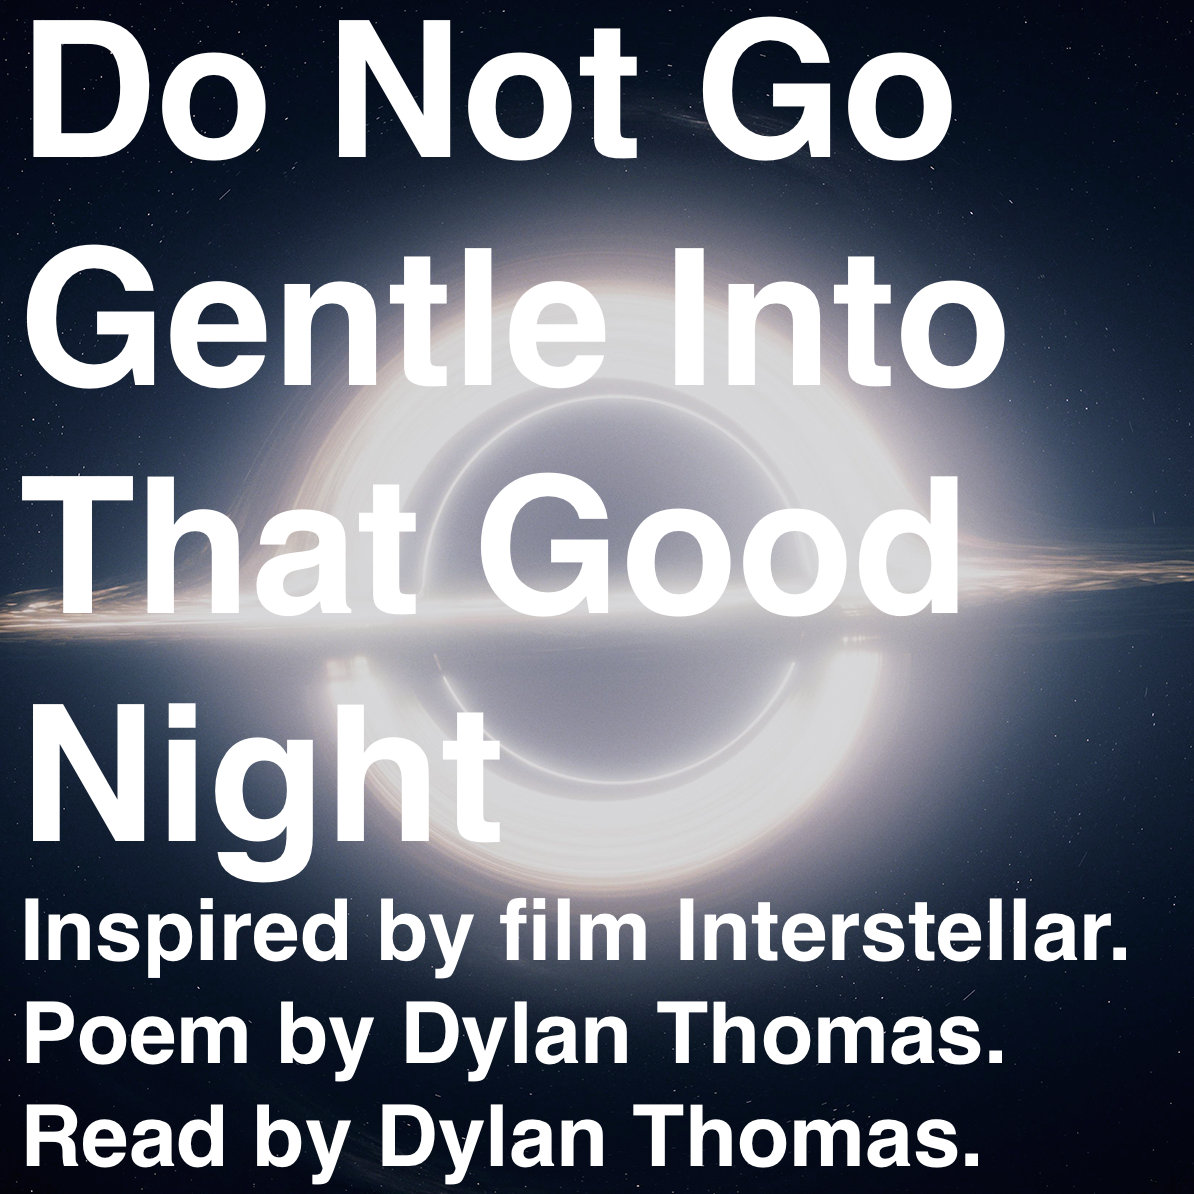 an analysis of the poem do not go gentle into that good night by dylan thomas In the poem do not go gentle into that goodnight, dylan thomas repeatedly refers to death and dying through structure, tone, and poetic devices response to literature jenny ly a message hidden by dylan thomas in his poem tells the reader to live their life to the fullest the poem do not.